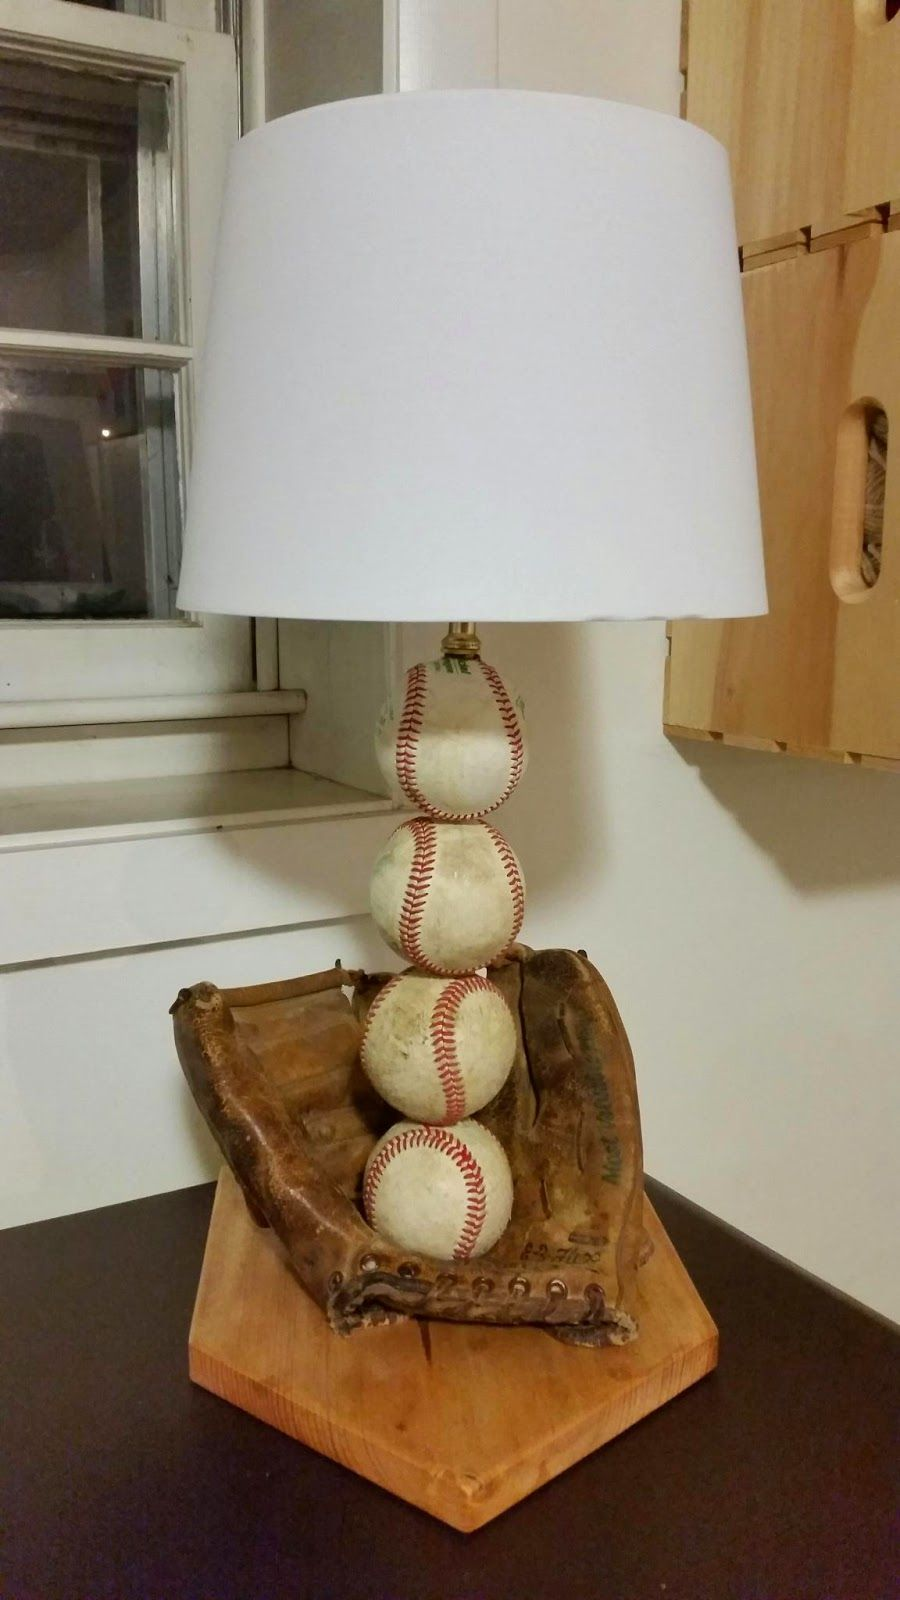 The Perfect Gift For A Baseball Fan This Is Great Project Beginner Or Advance DIYer Diy Projects Boys